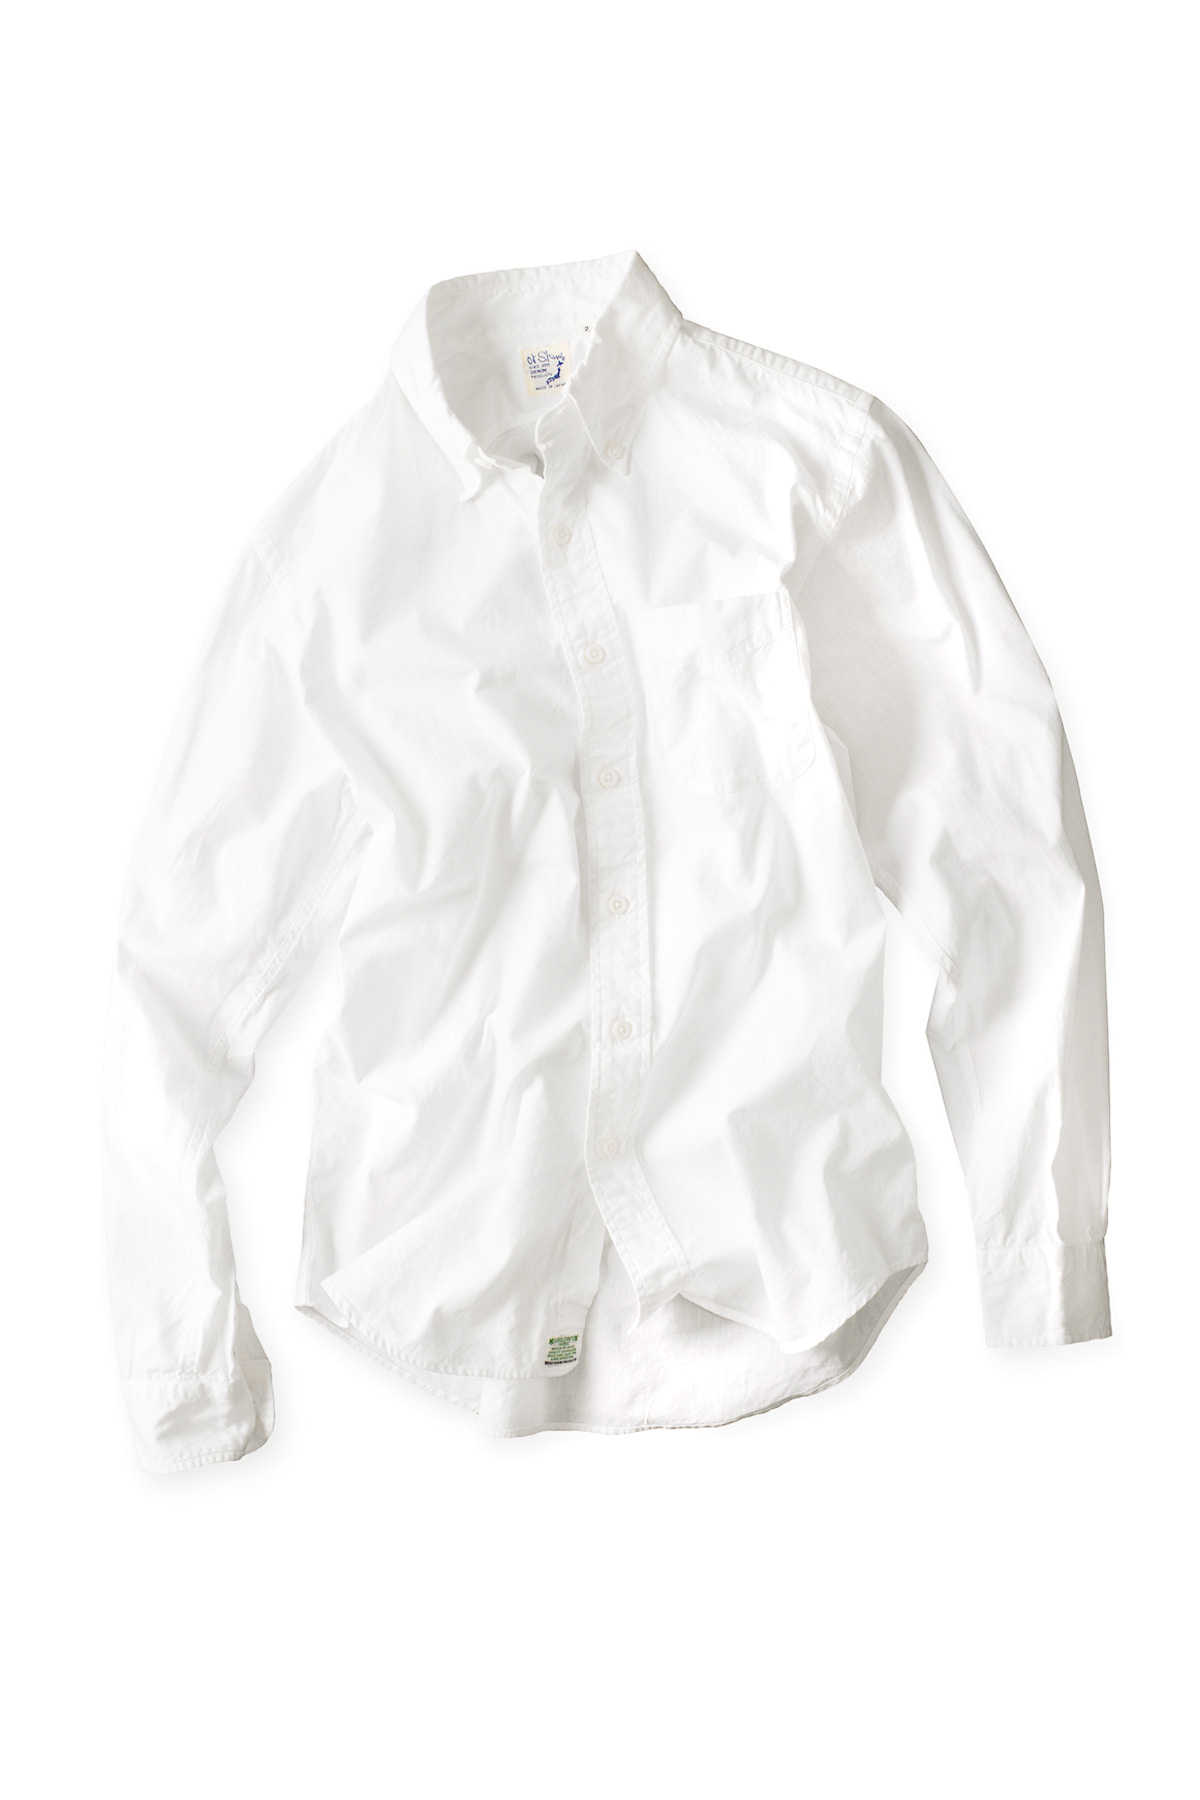 orSlow : Button Down Shirts (White)